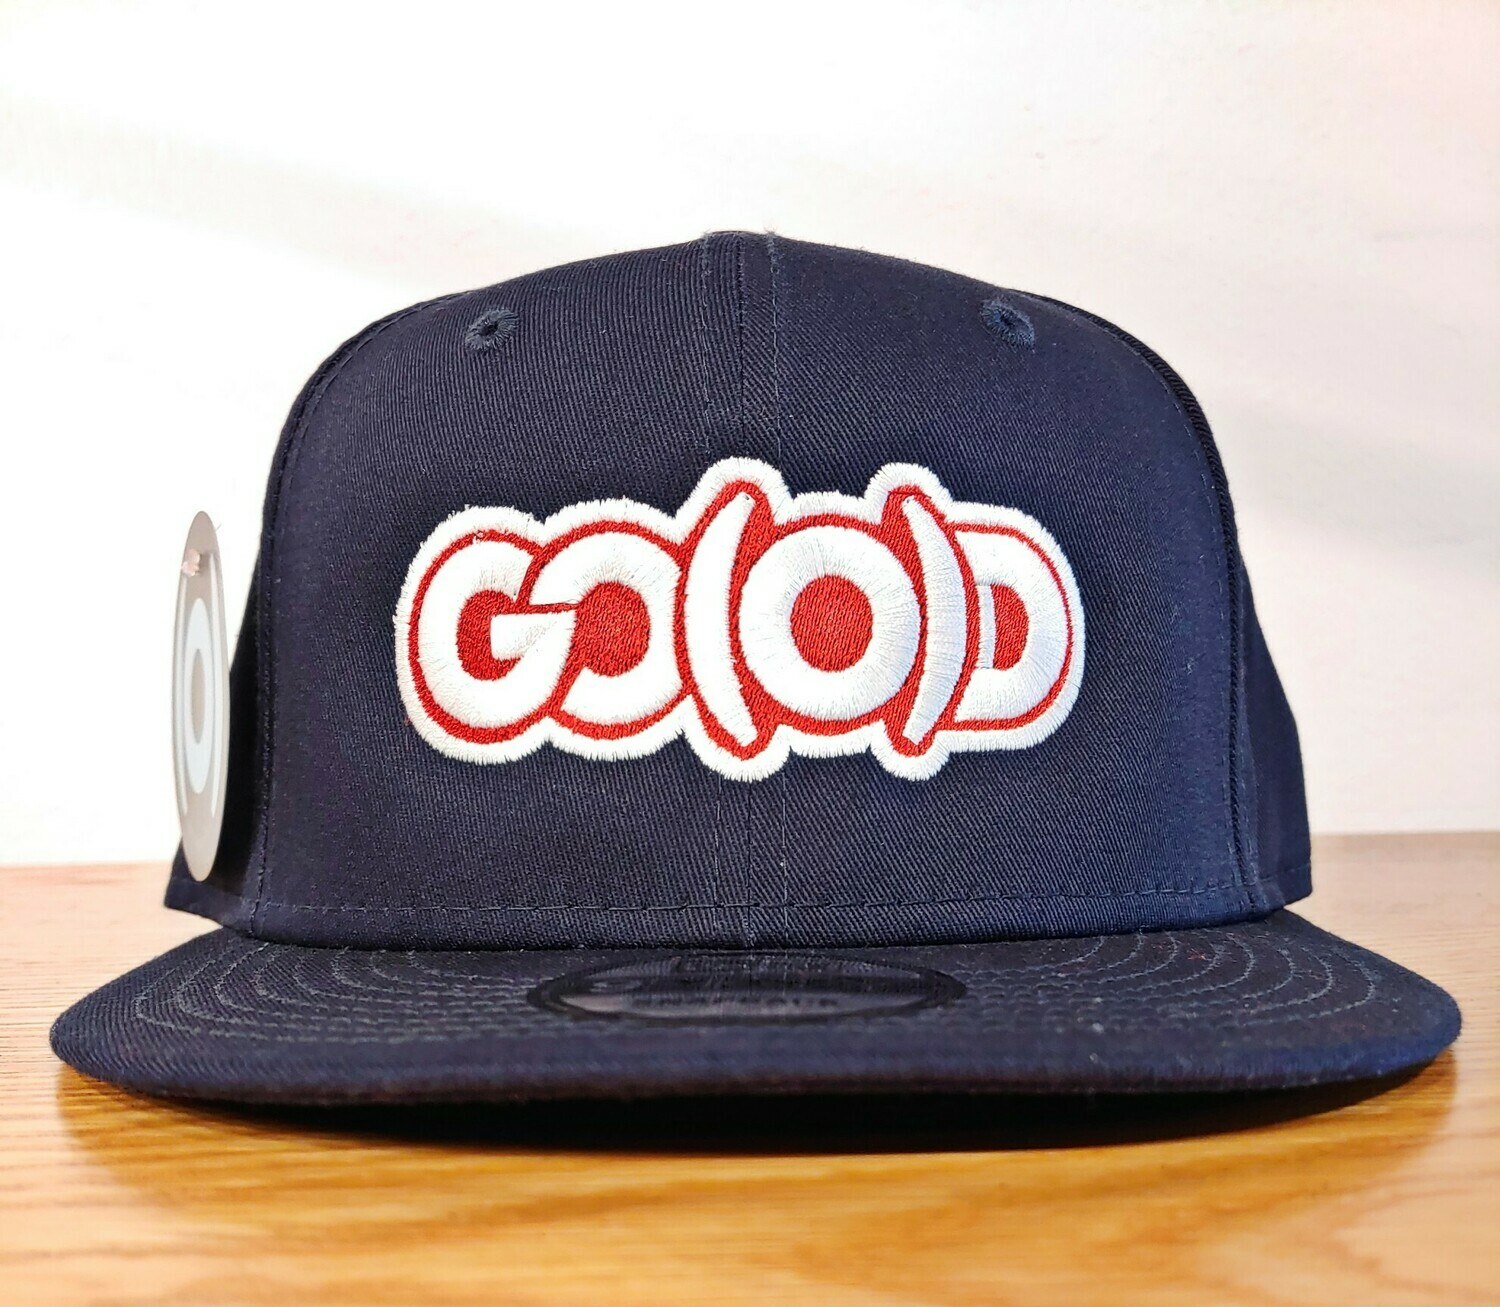 GO(O)D Company x New Era Snapback-navy/red/white